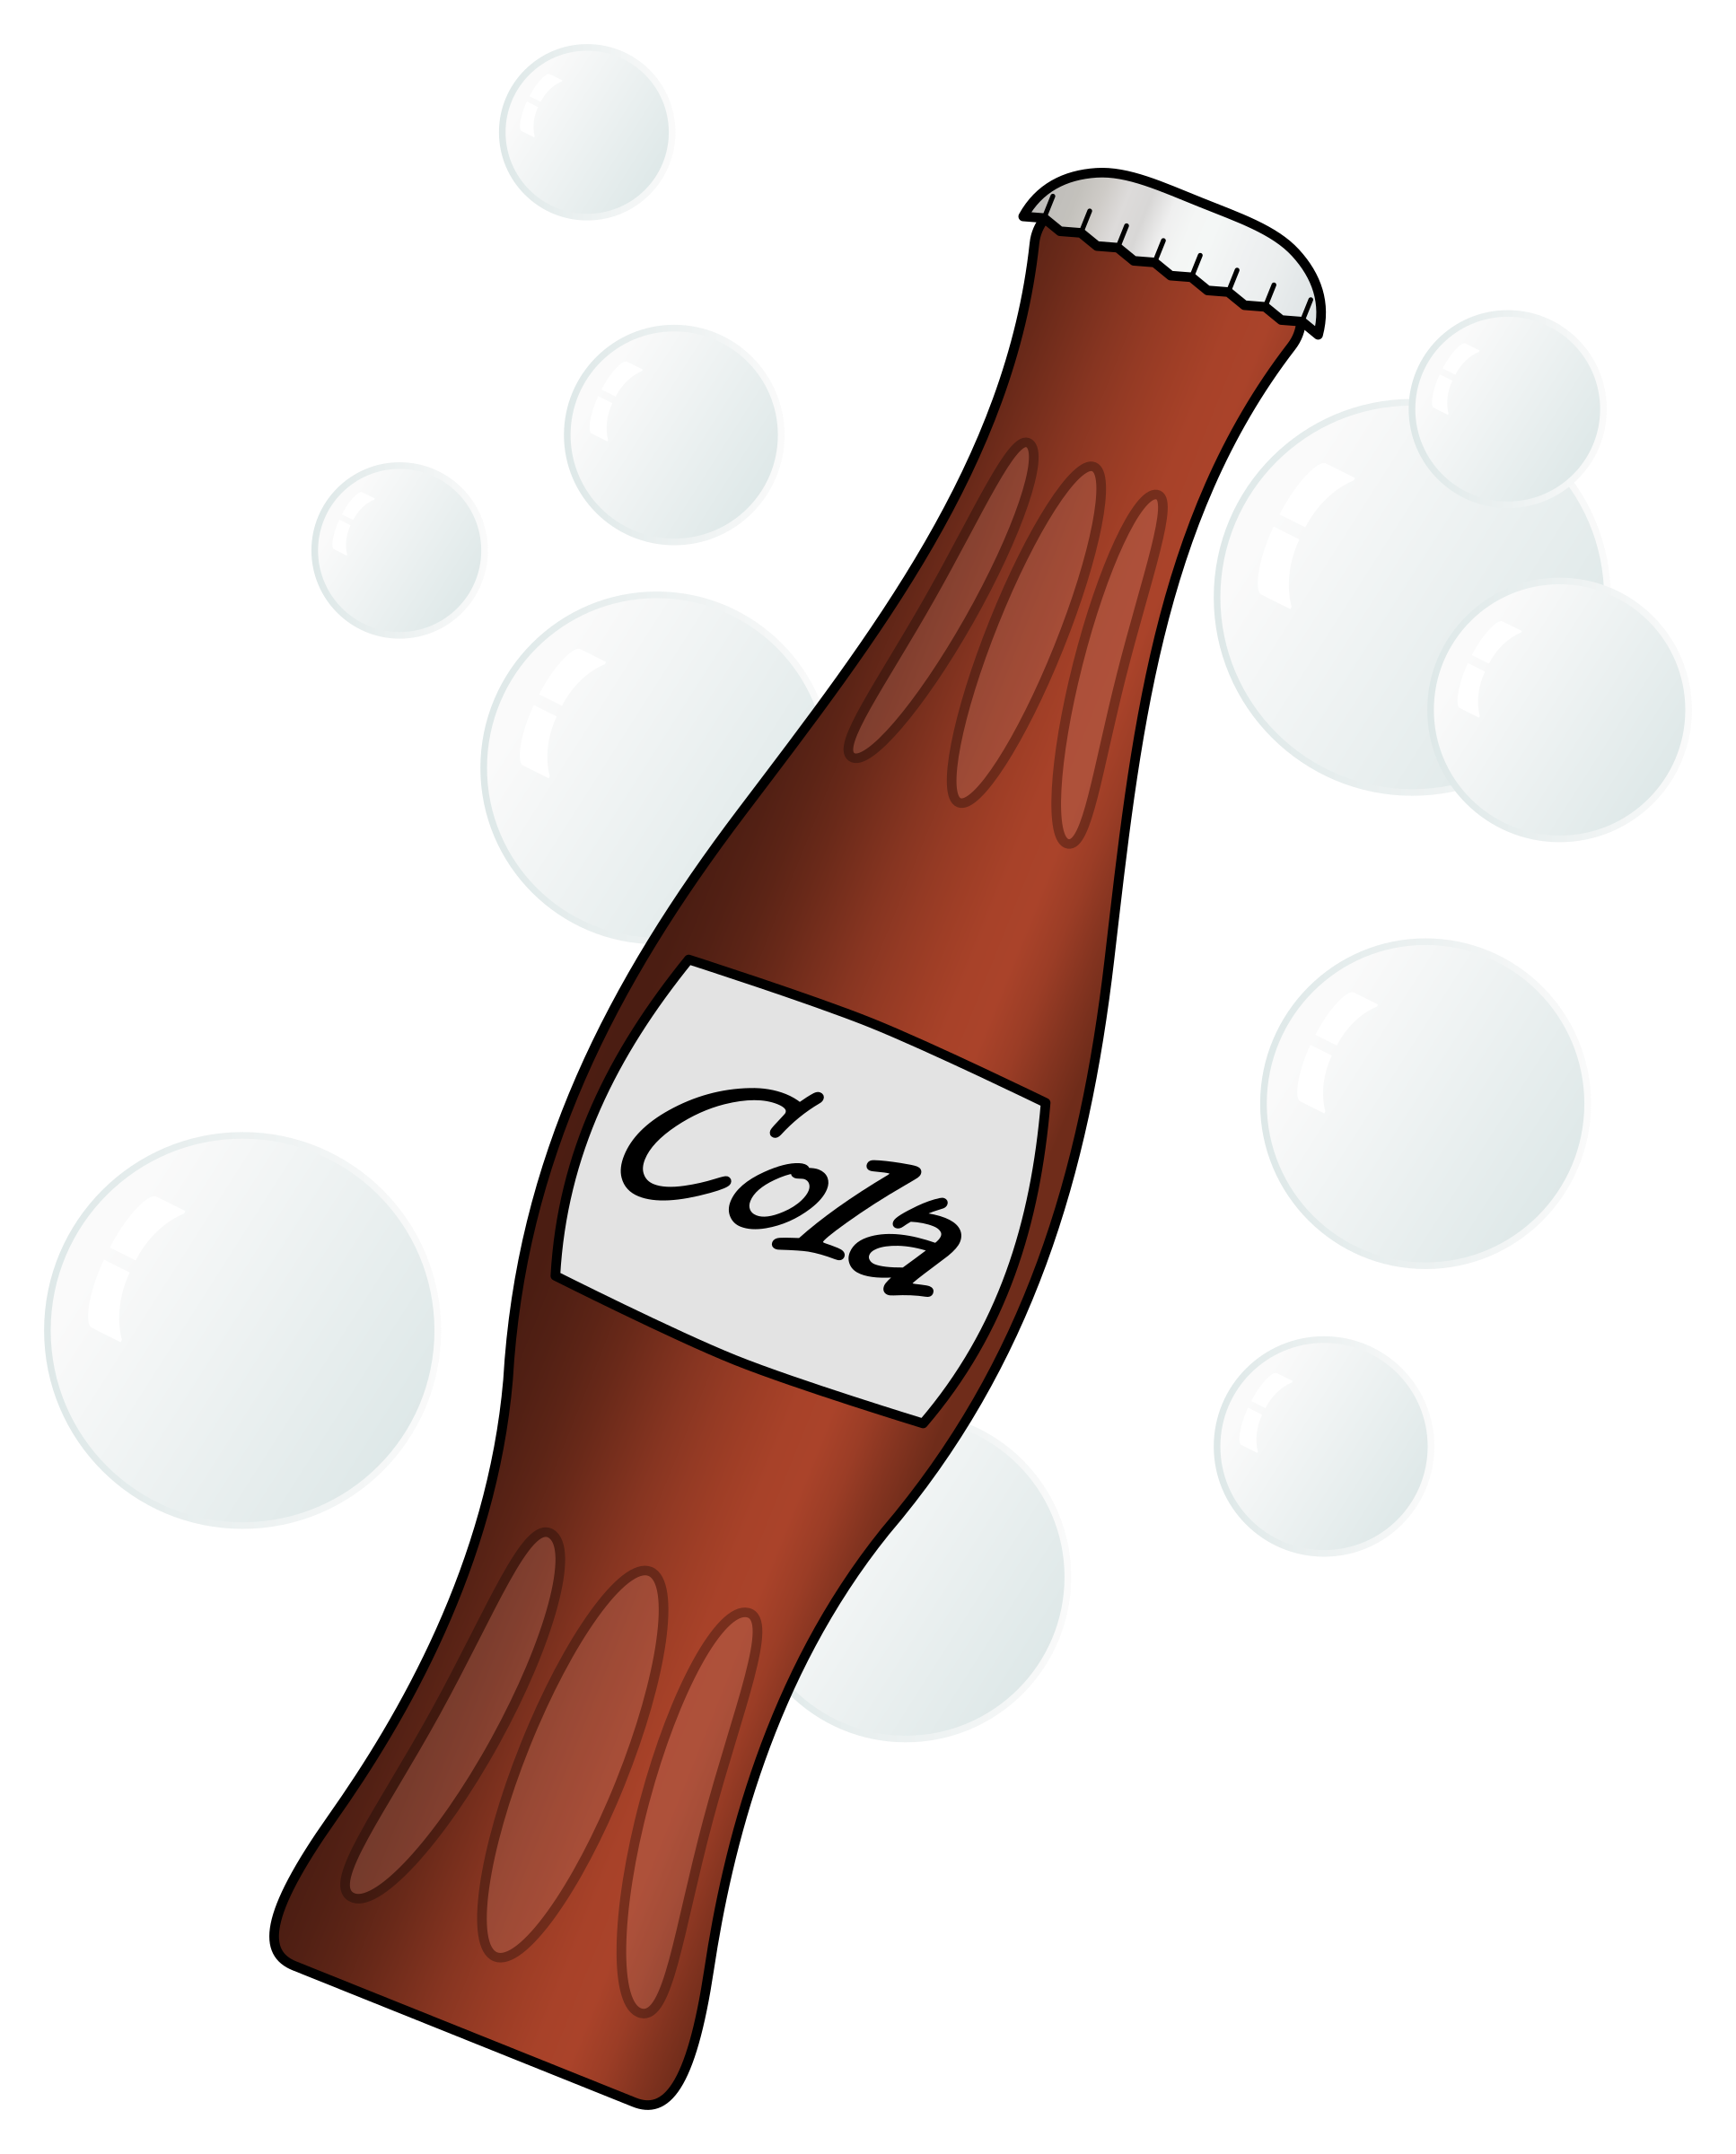 Poetry clipart bottle. Soda by arvin r